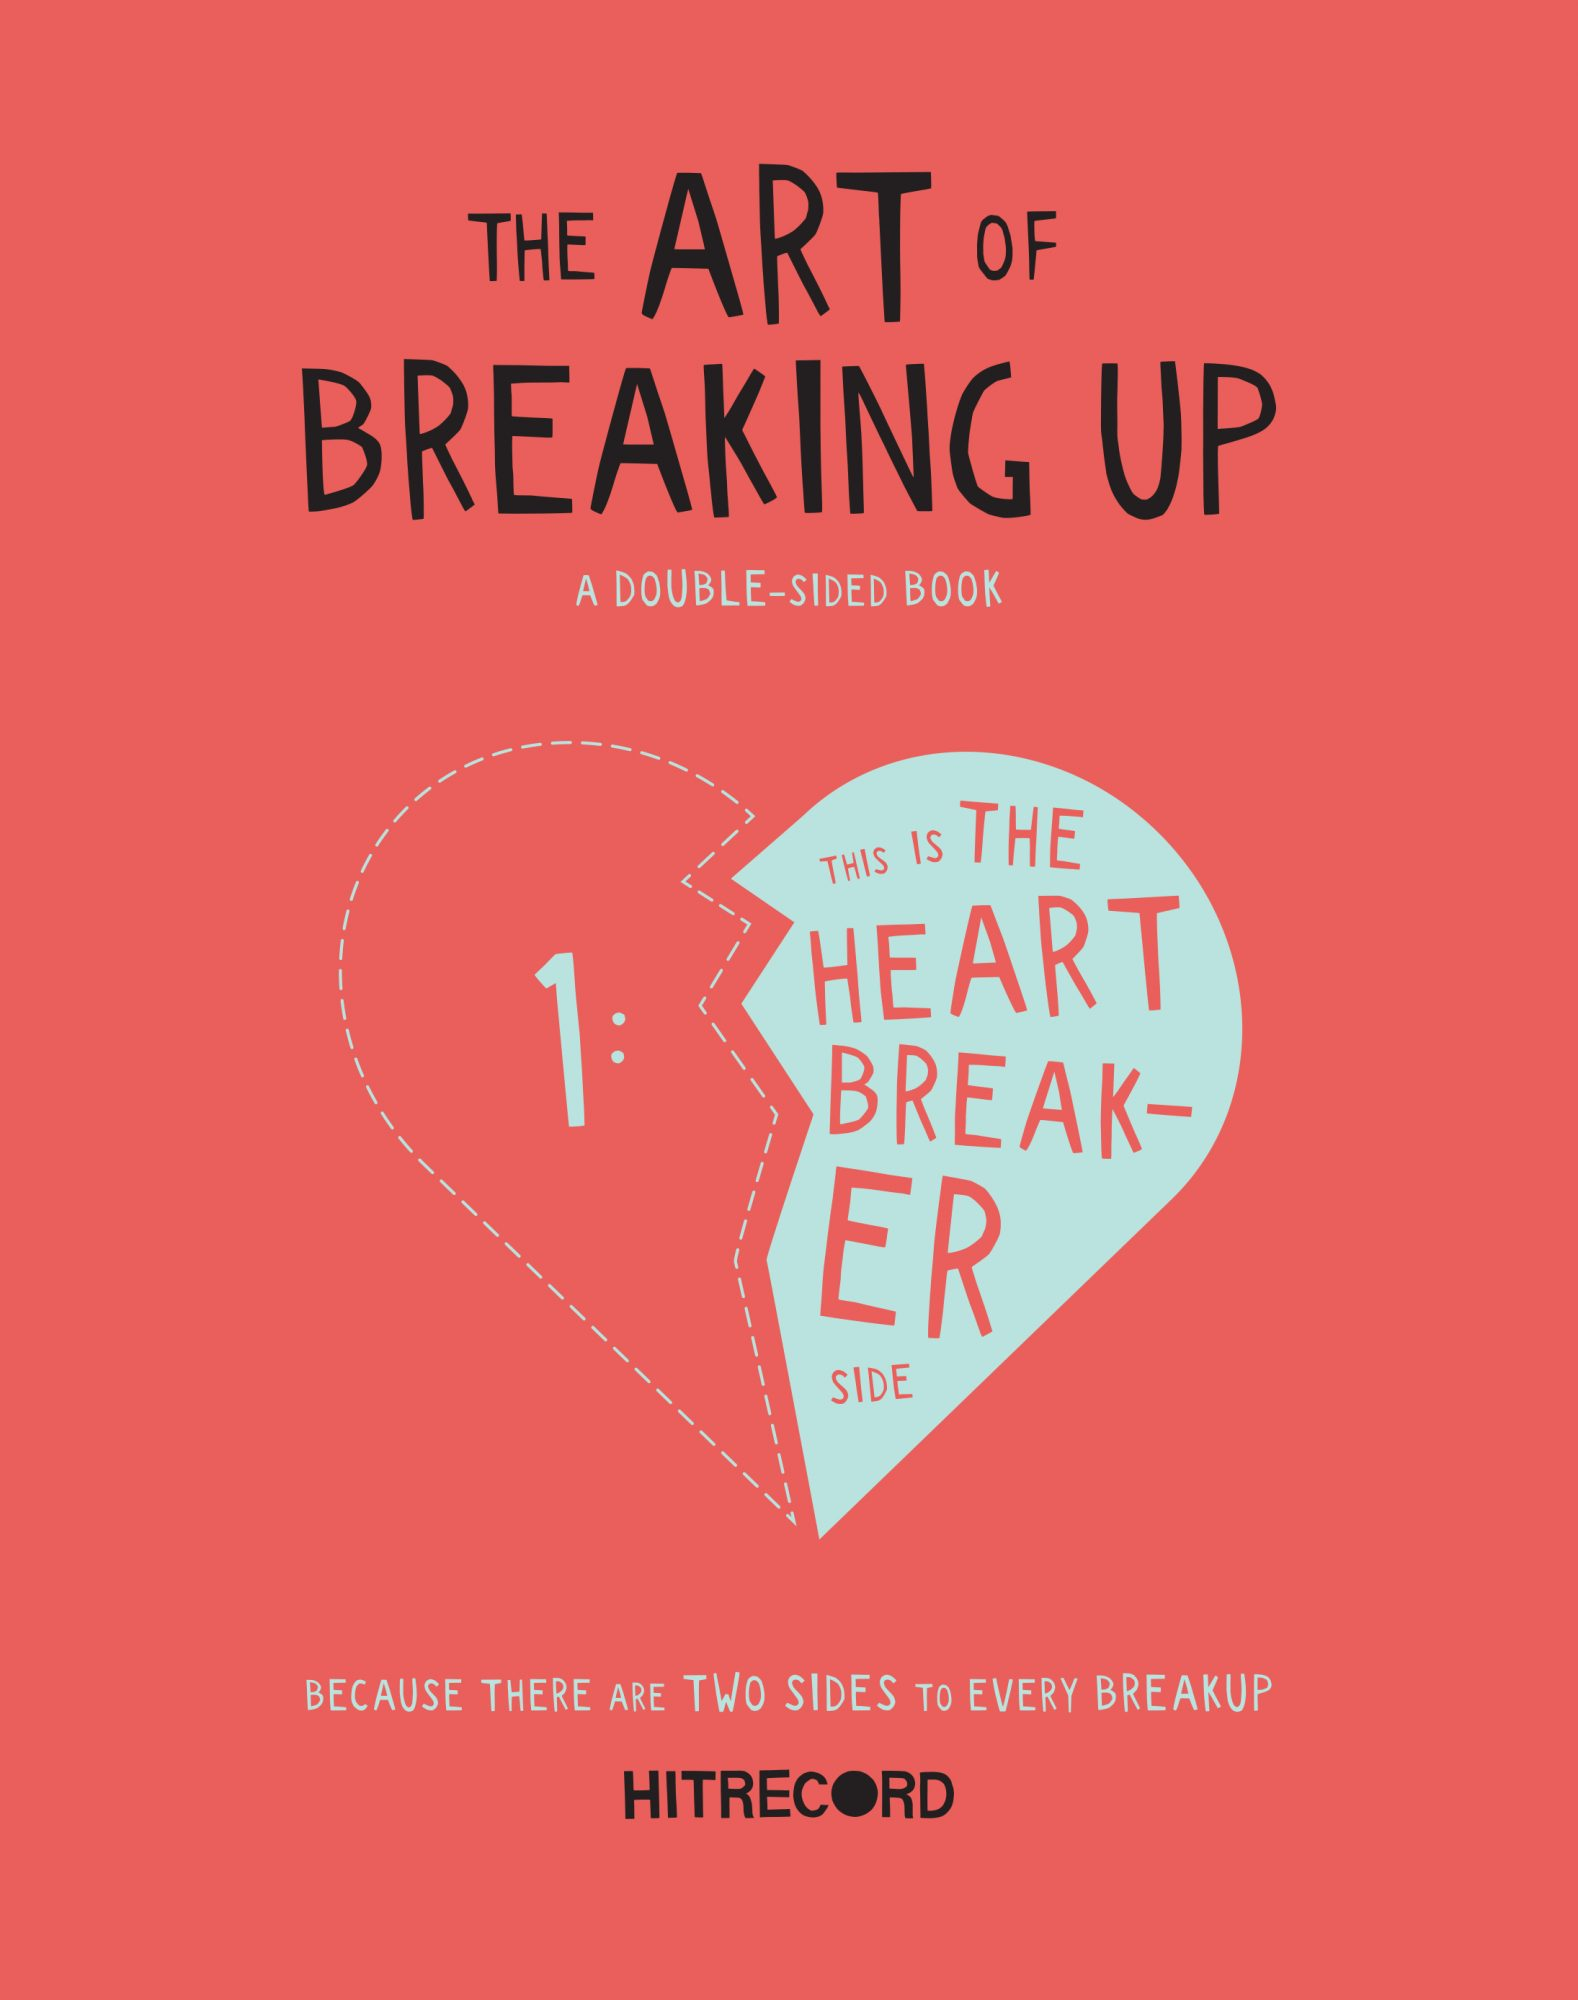 The Art of Breaking Up by HITRECORD